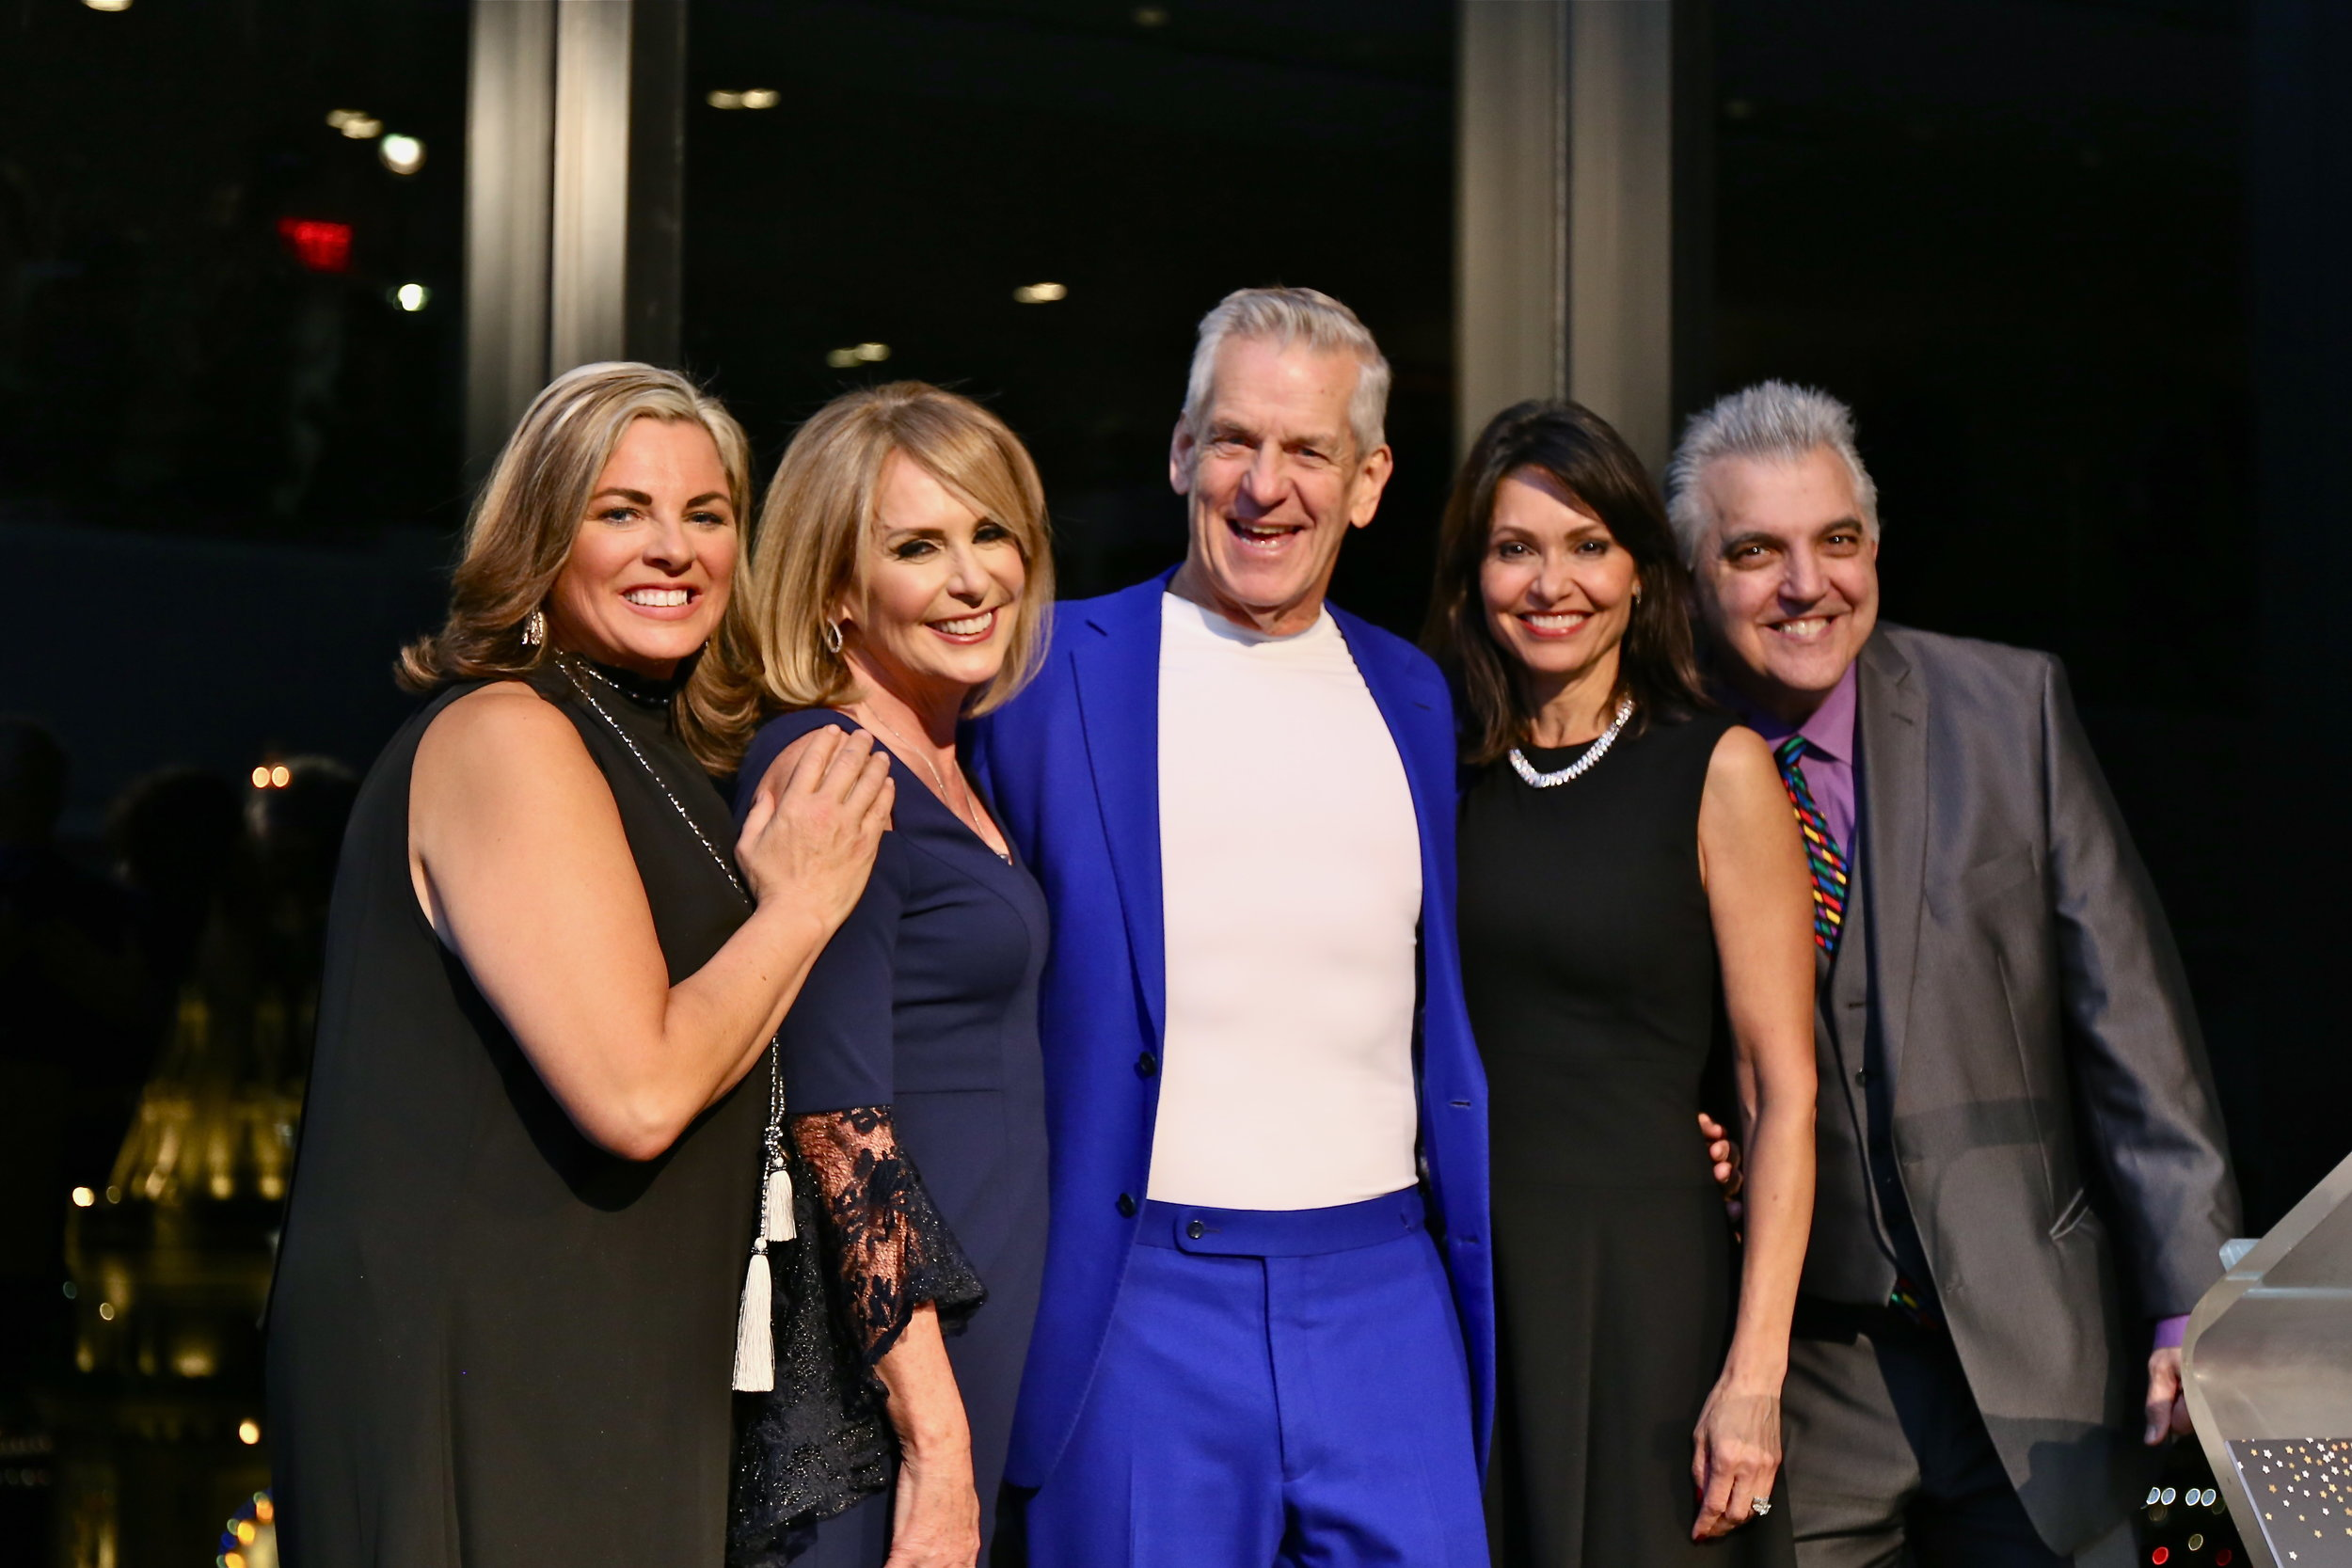 Jett Foundation founder Christine McSherry, with Beacon Award winner Candy O'Terry, and emcees Lenny Clarke, Liz Brunner, and Johnny Pizzi.